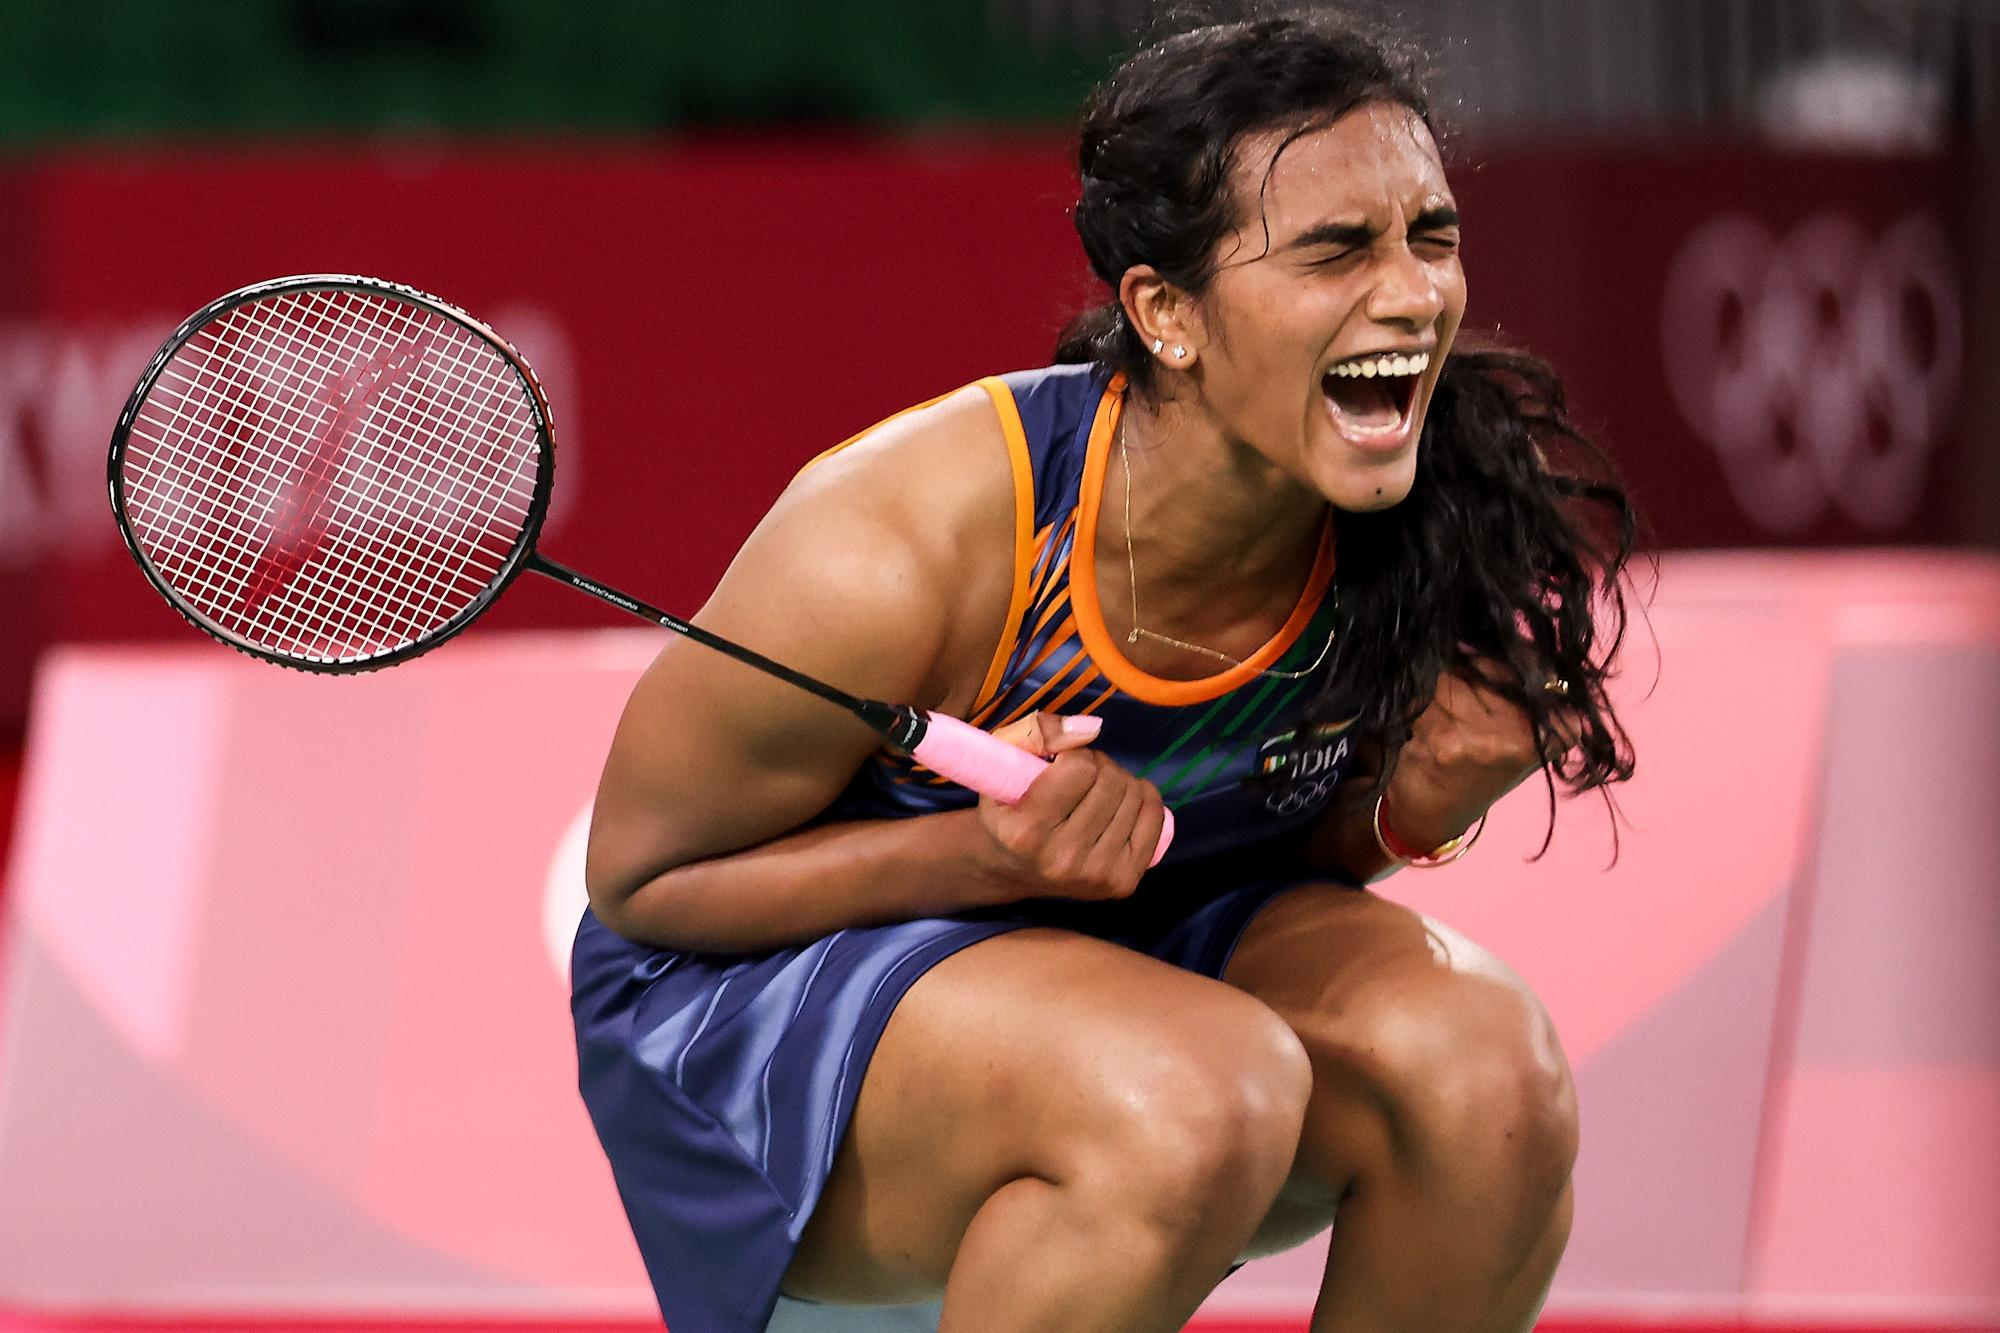 WATCH: Sindhu roars into Tokyo Olympics semi-final after thrilling win over World No.5